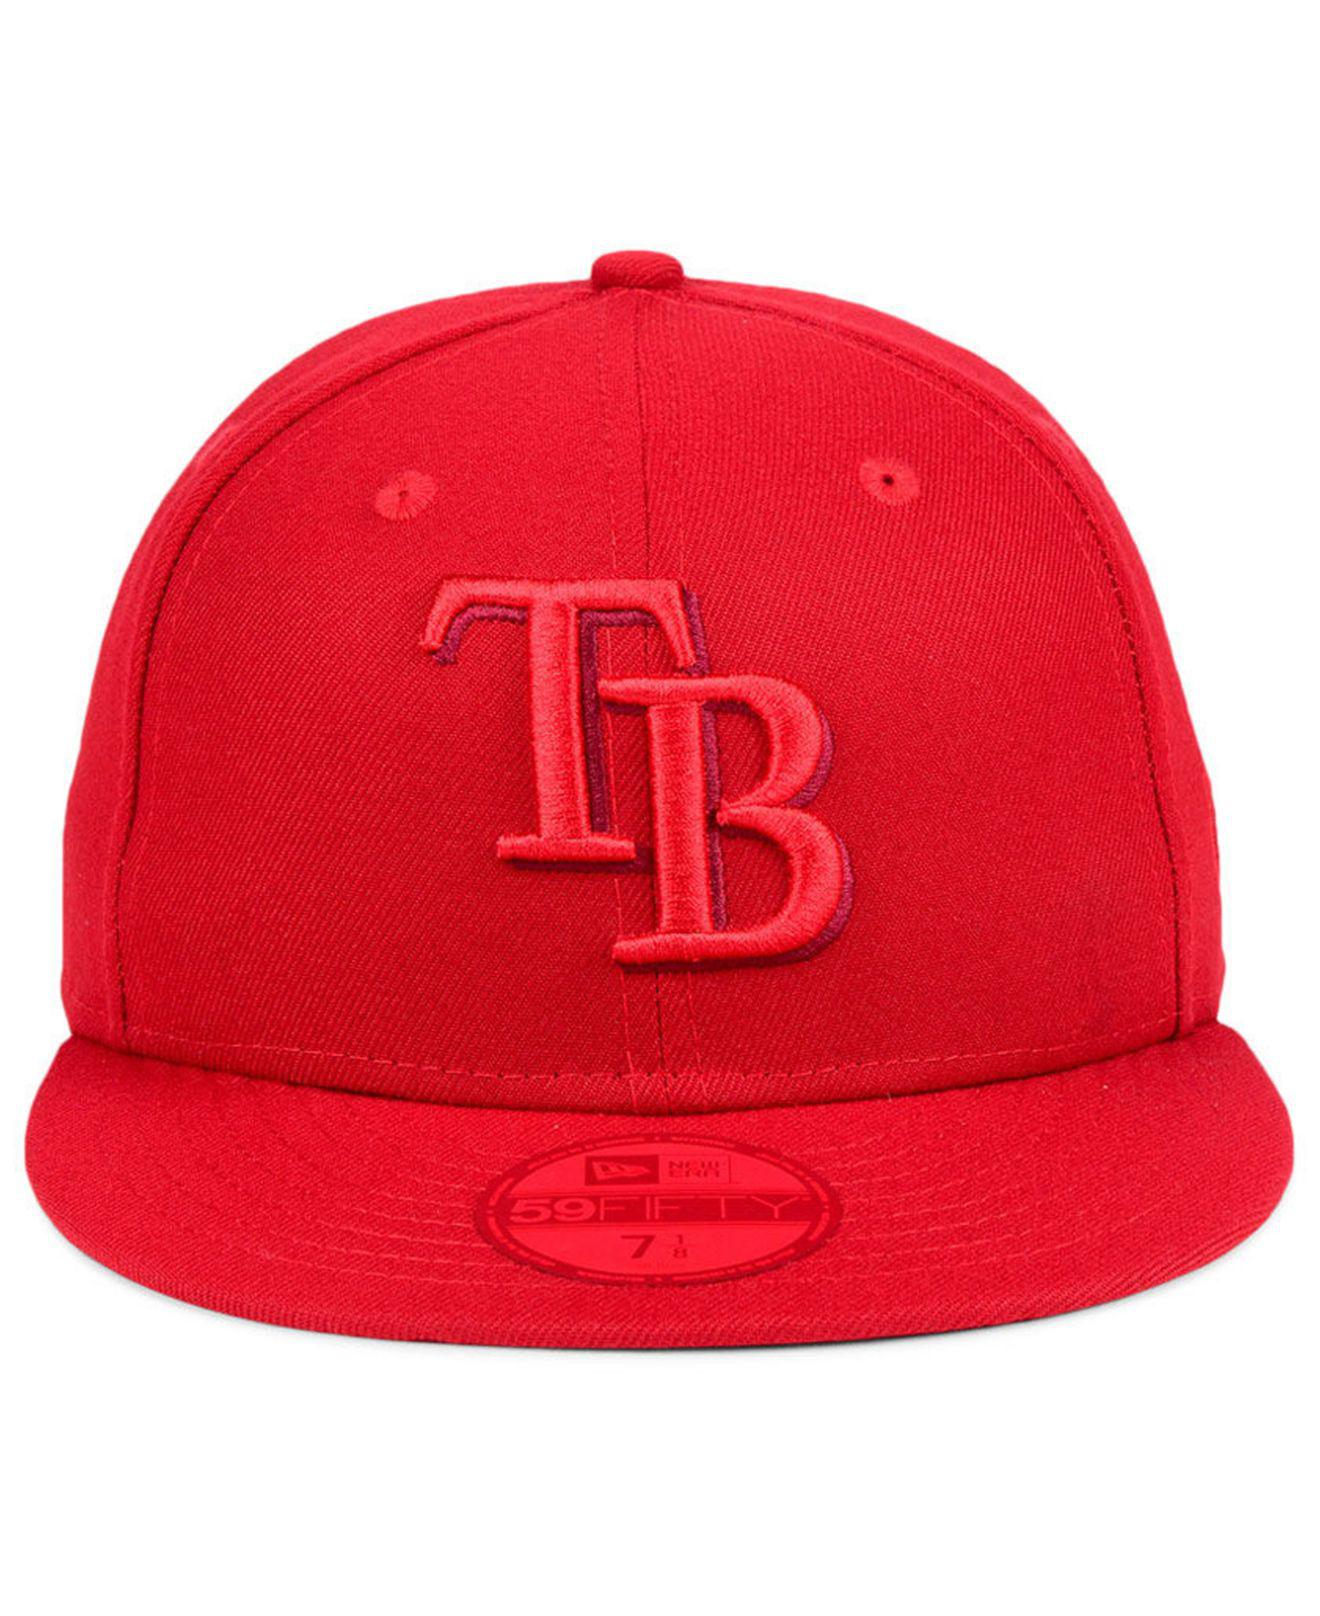 size 40 b177a 43079 ... cheapest lyst ktz tampa bay rays prism color pack 59fifty cap in red  for men c7ff2